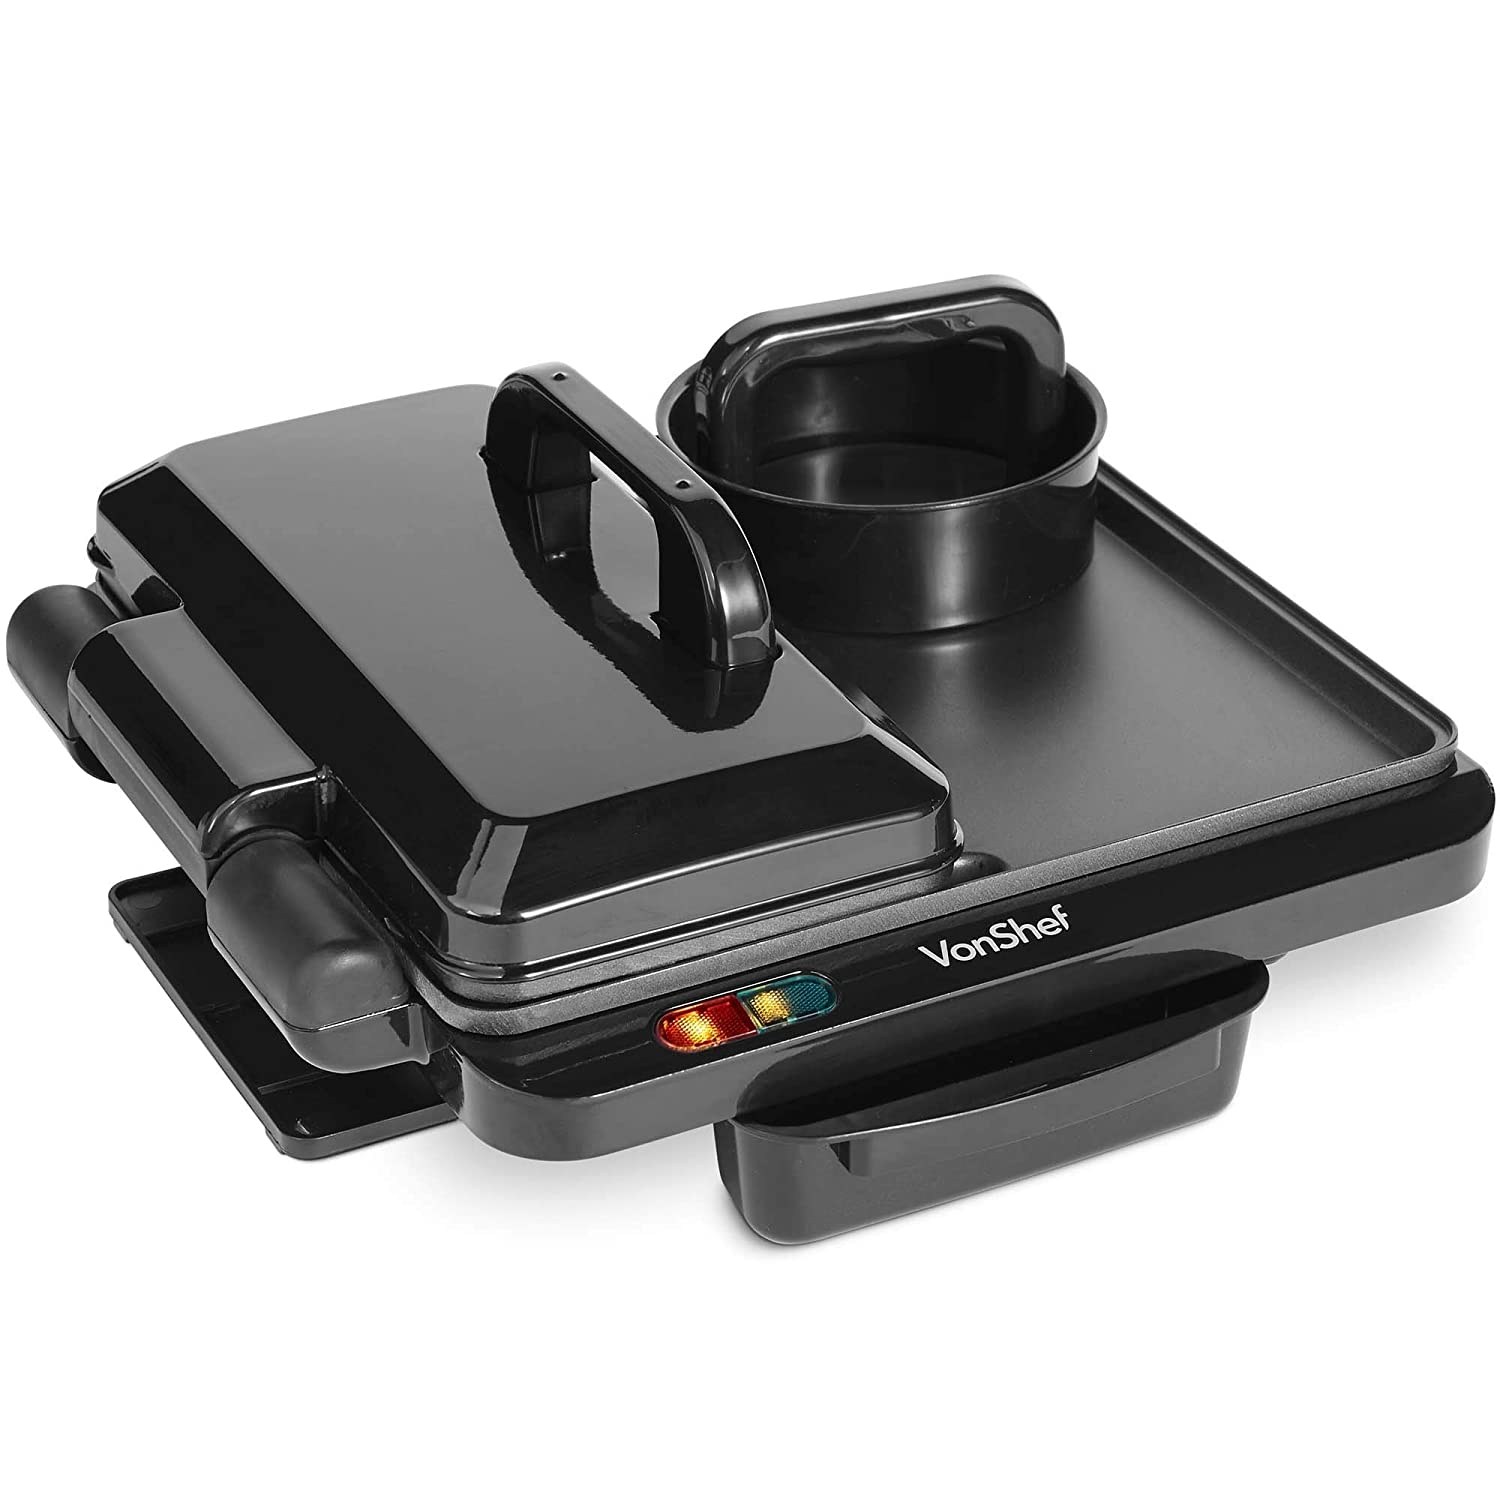 VonShef Breakfast Grill Griddle with Adjustable Temperature Control, Non Stick Coating and Butterfly Grill - 1100W